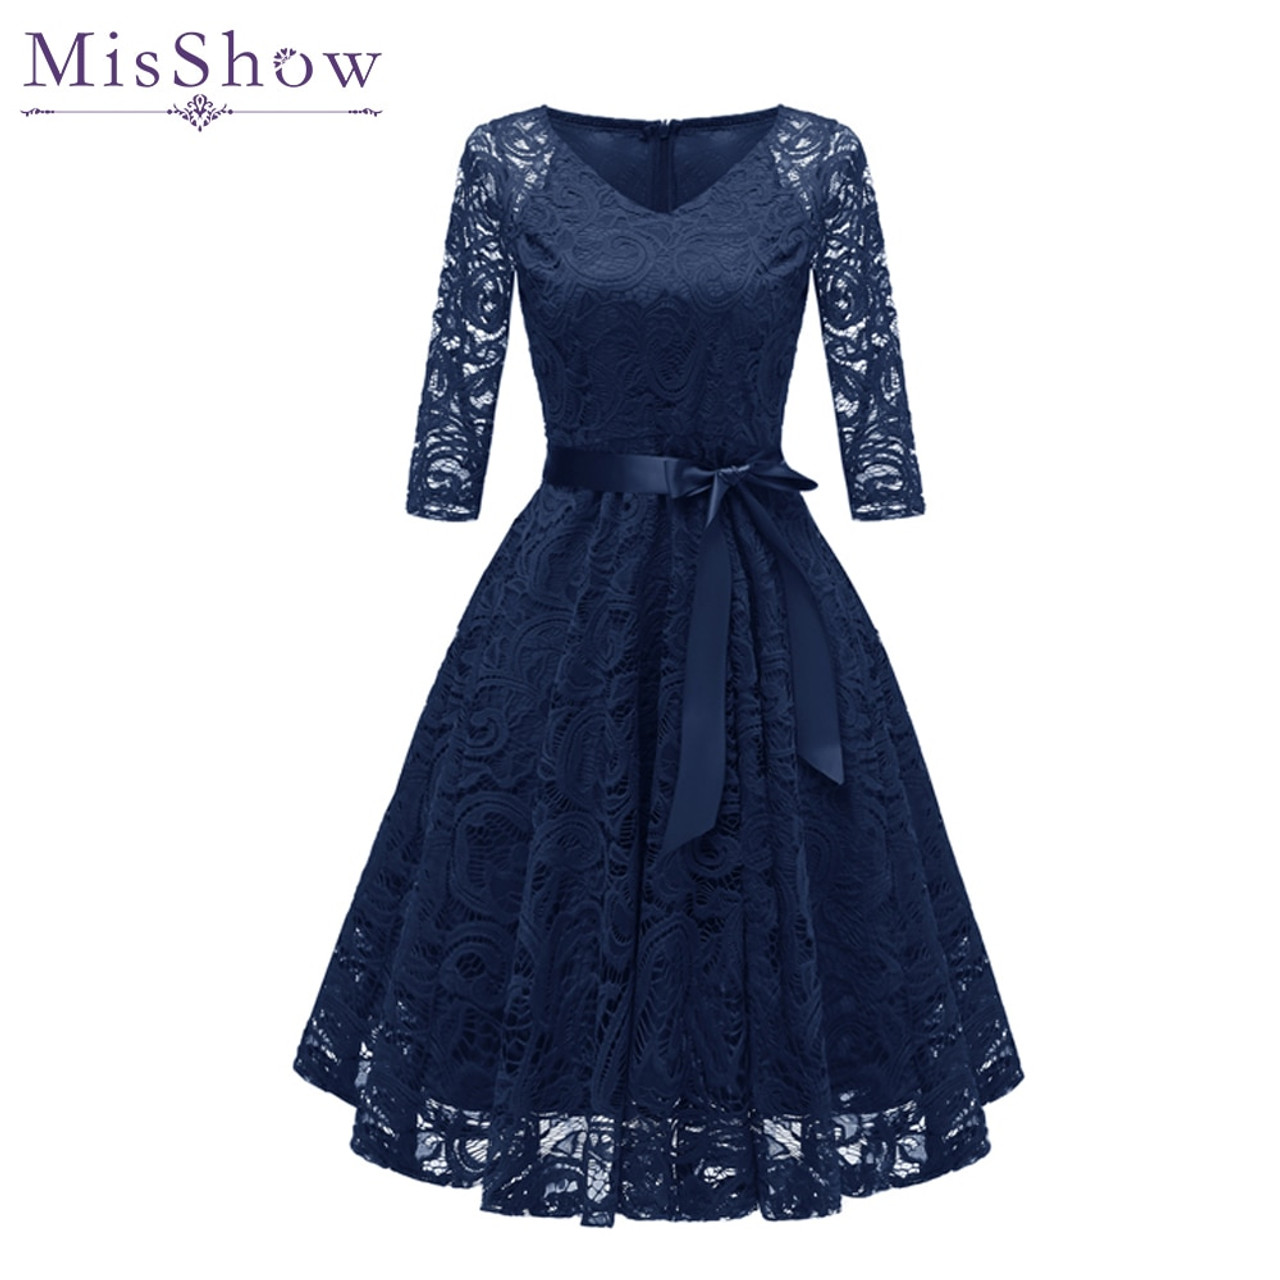 b9aac935cefc7 In Stock Navy Blue Cocktail Dresses Elegant Short Pink Dress Lace Formal  Dresses Cheap Homecoming Dress 2018 Prom Gown With Sash